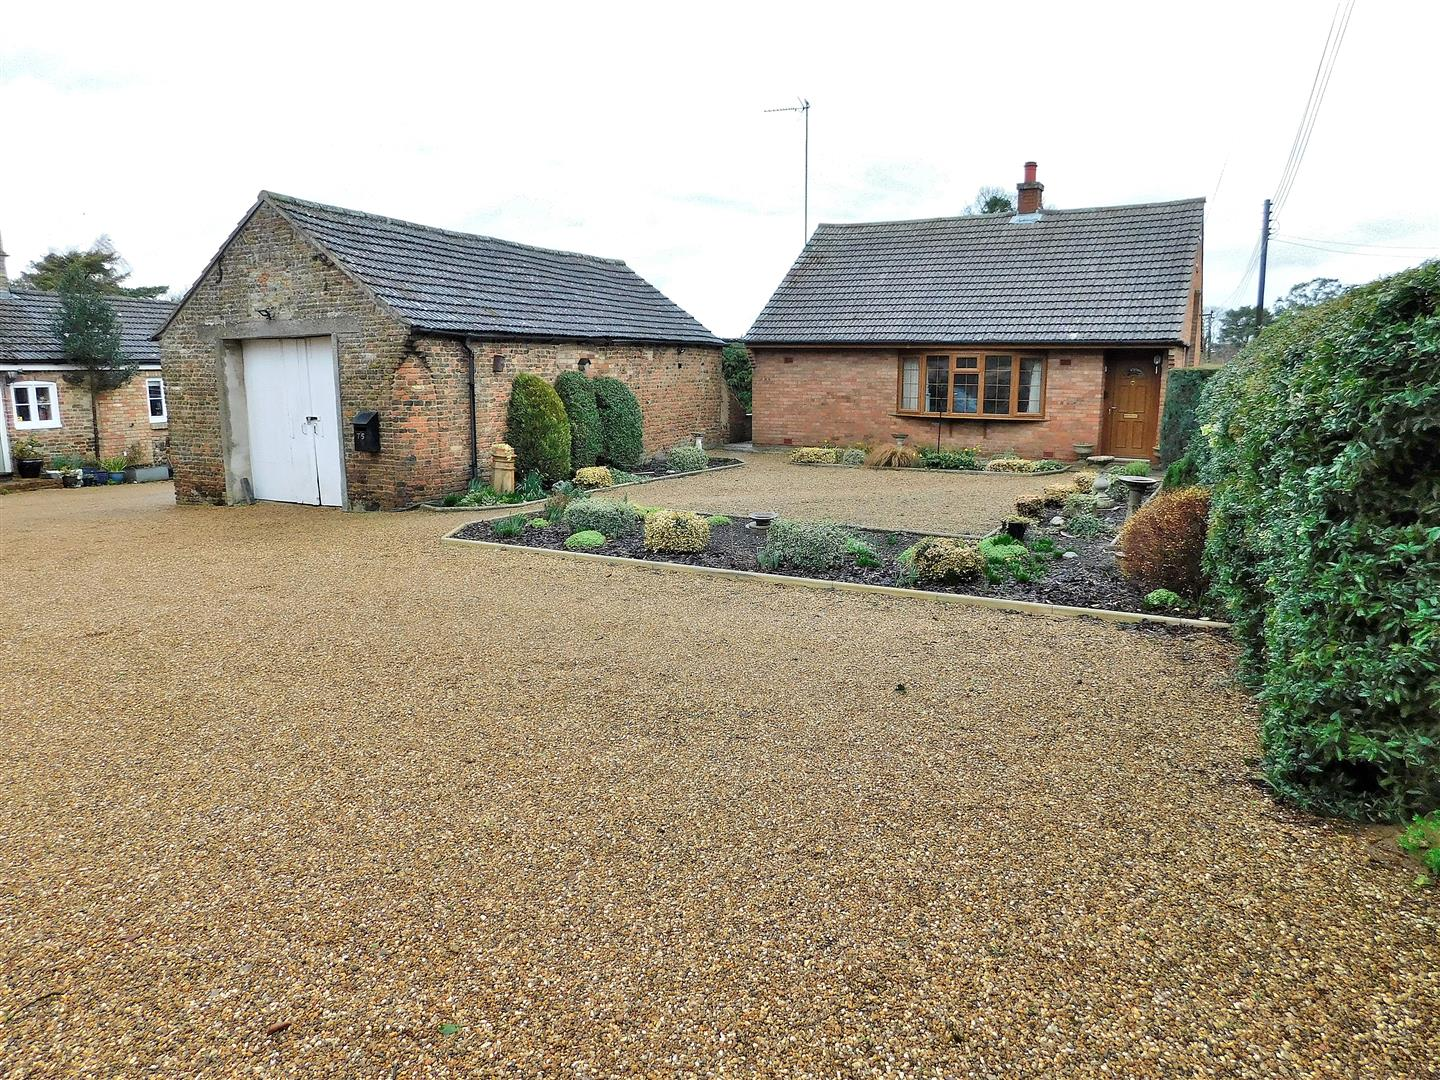 2 bed detached bungalow for sale in King's Lynn, PE34 3QG  - Property Image 1